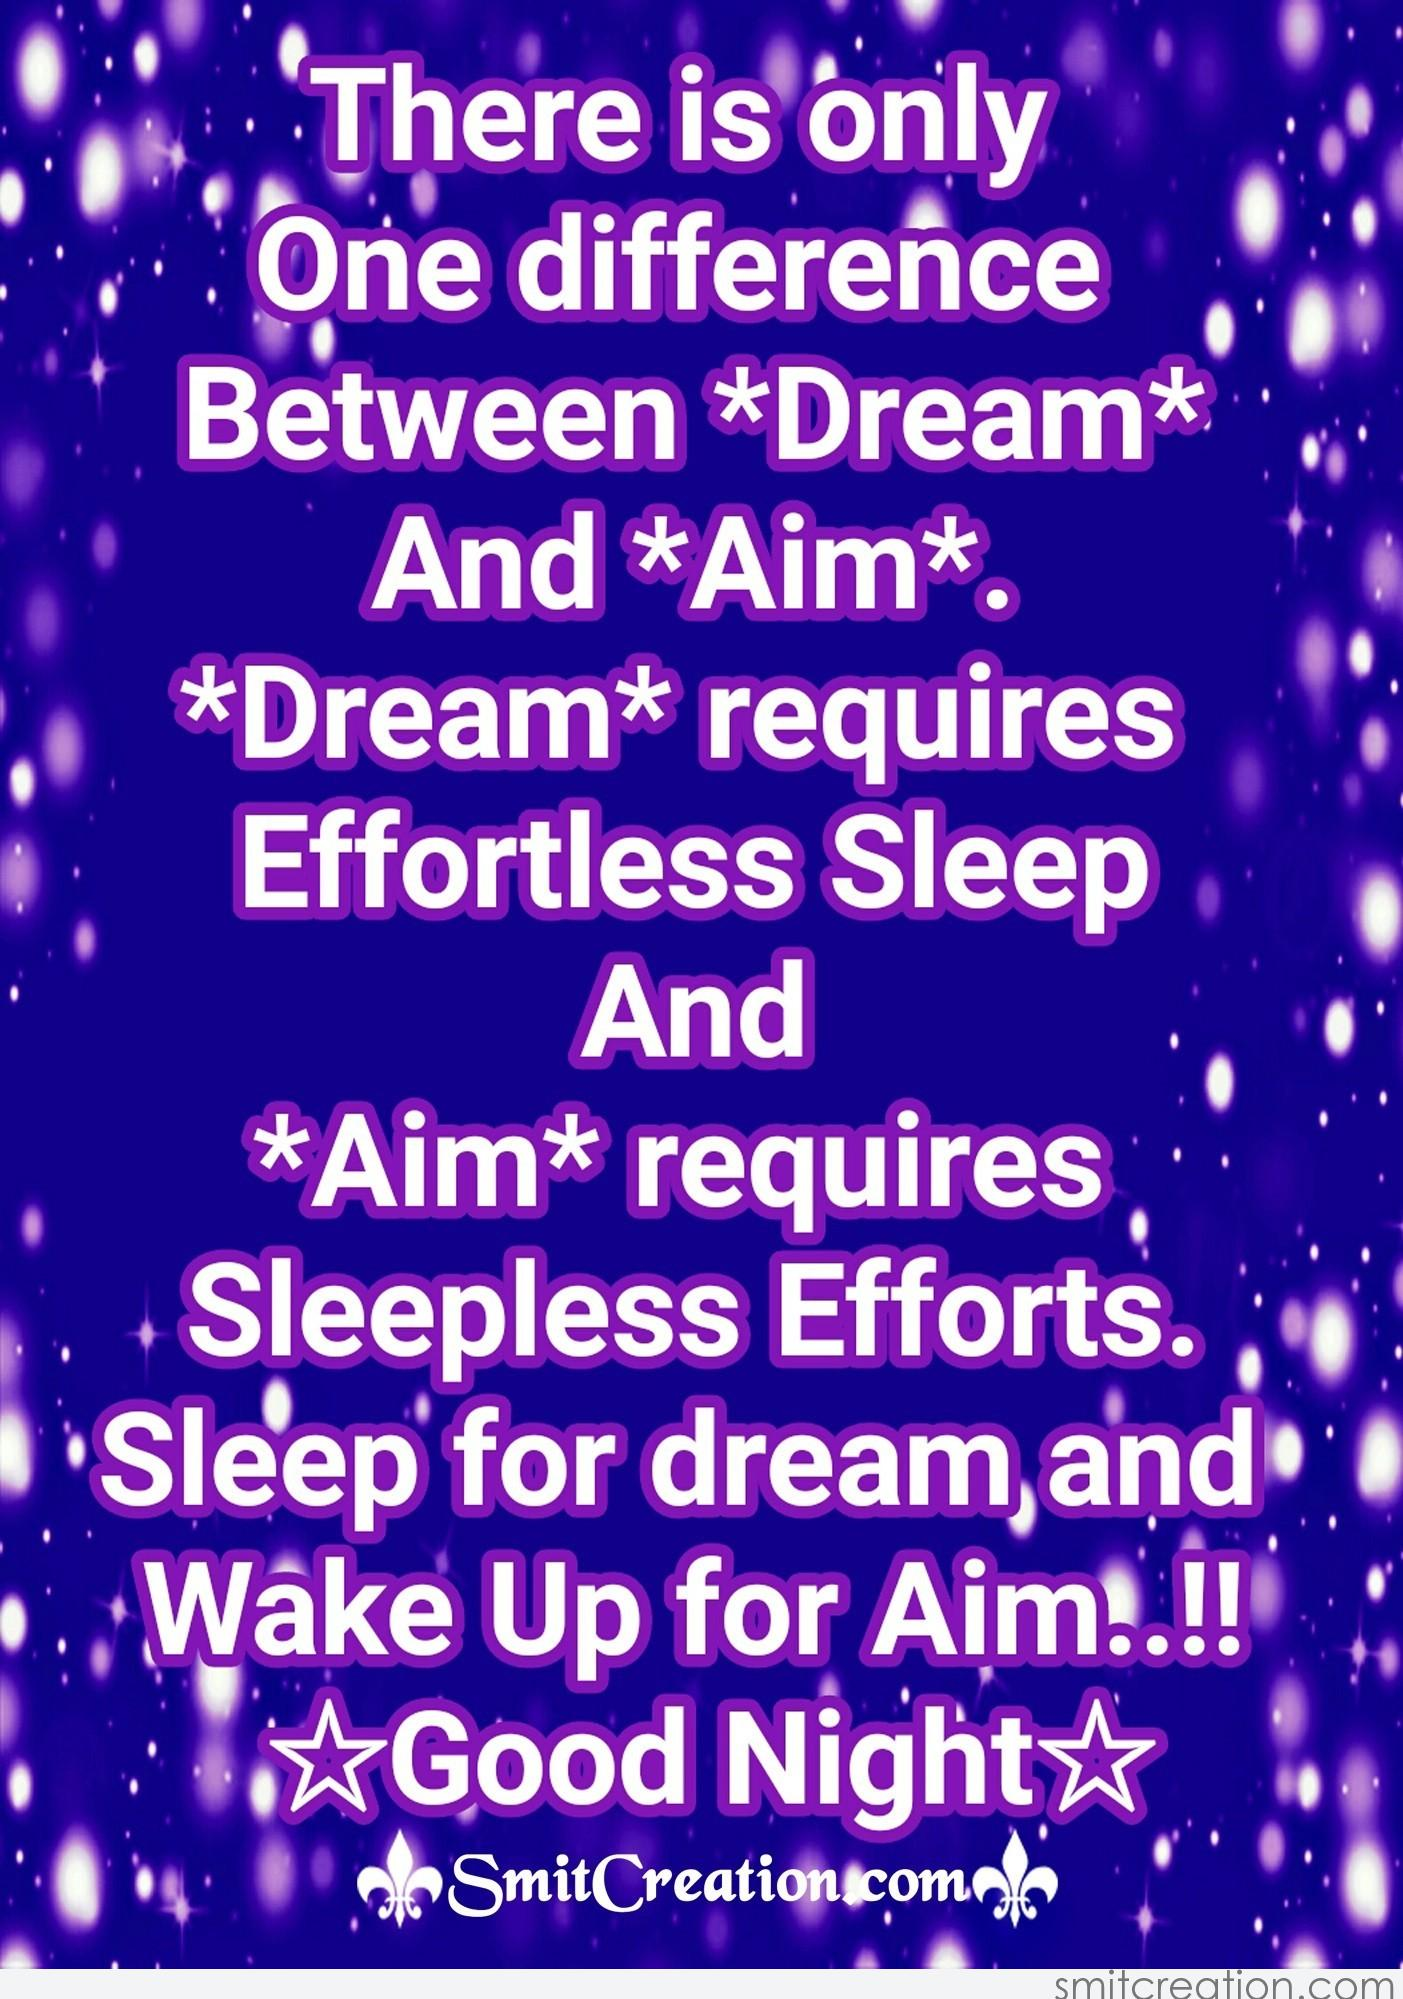 Good Night Inspirational Quotes Pictures And Graphics Smitcreation Com